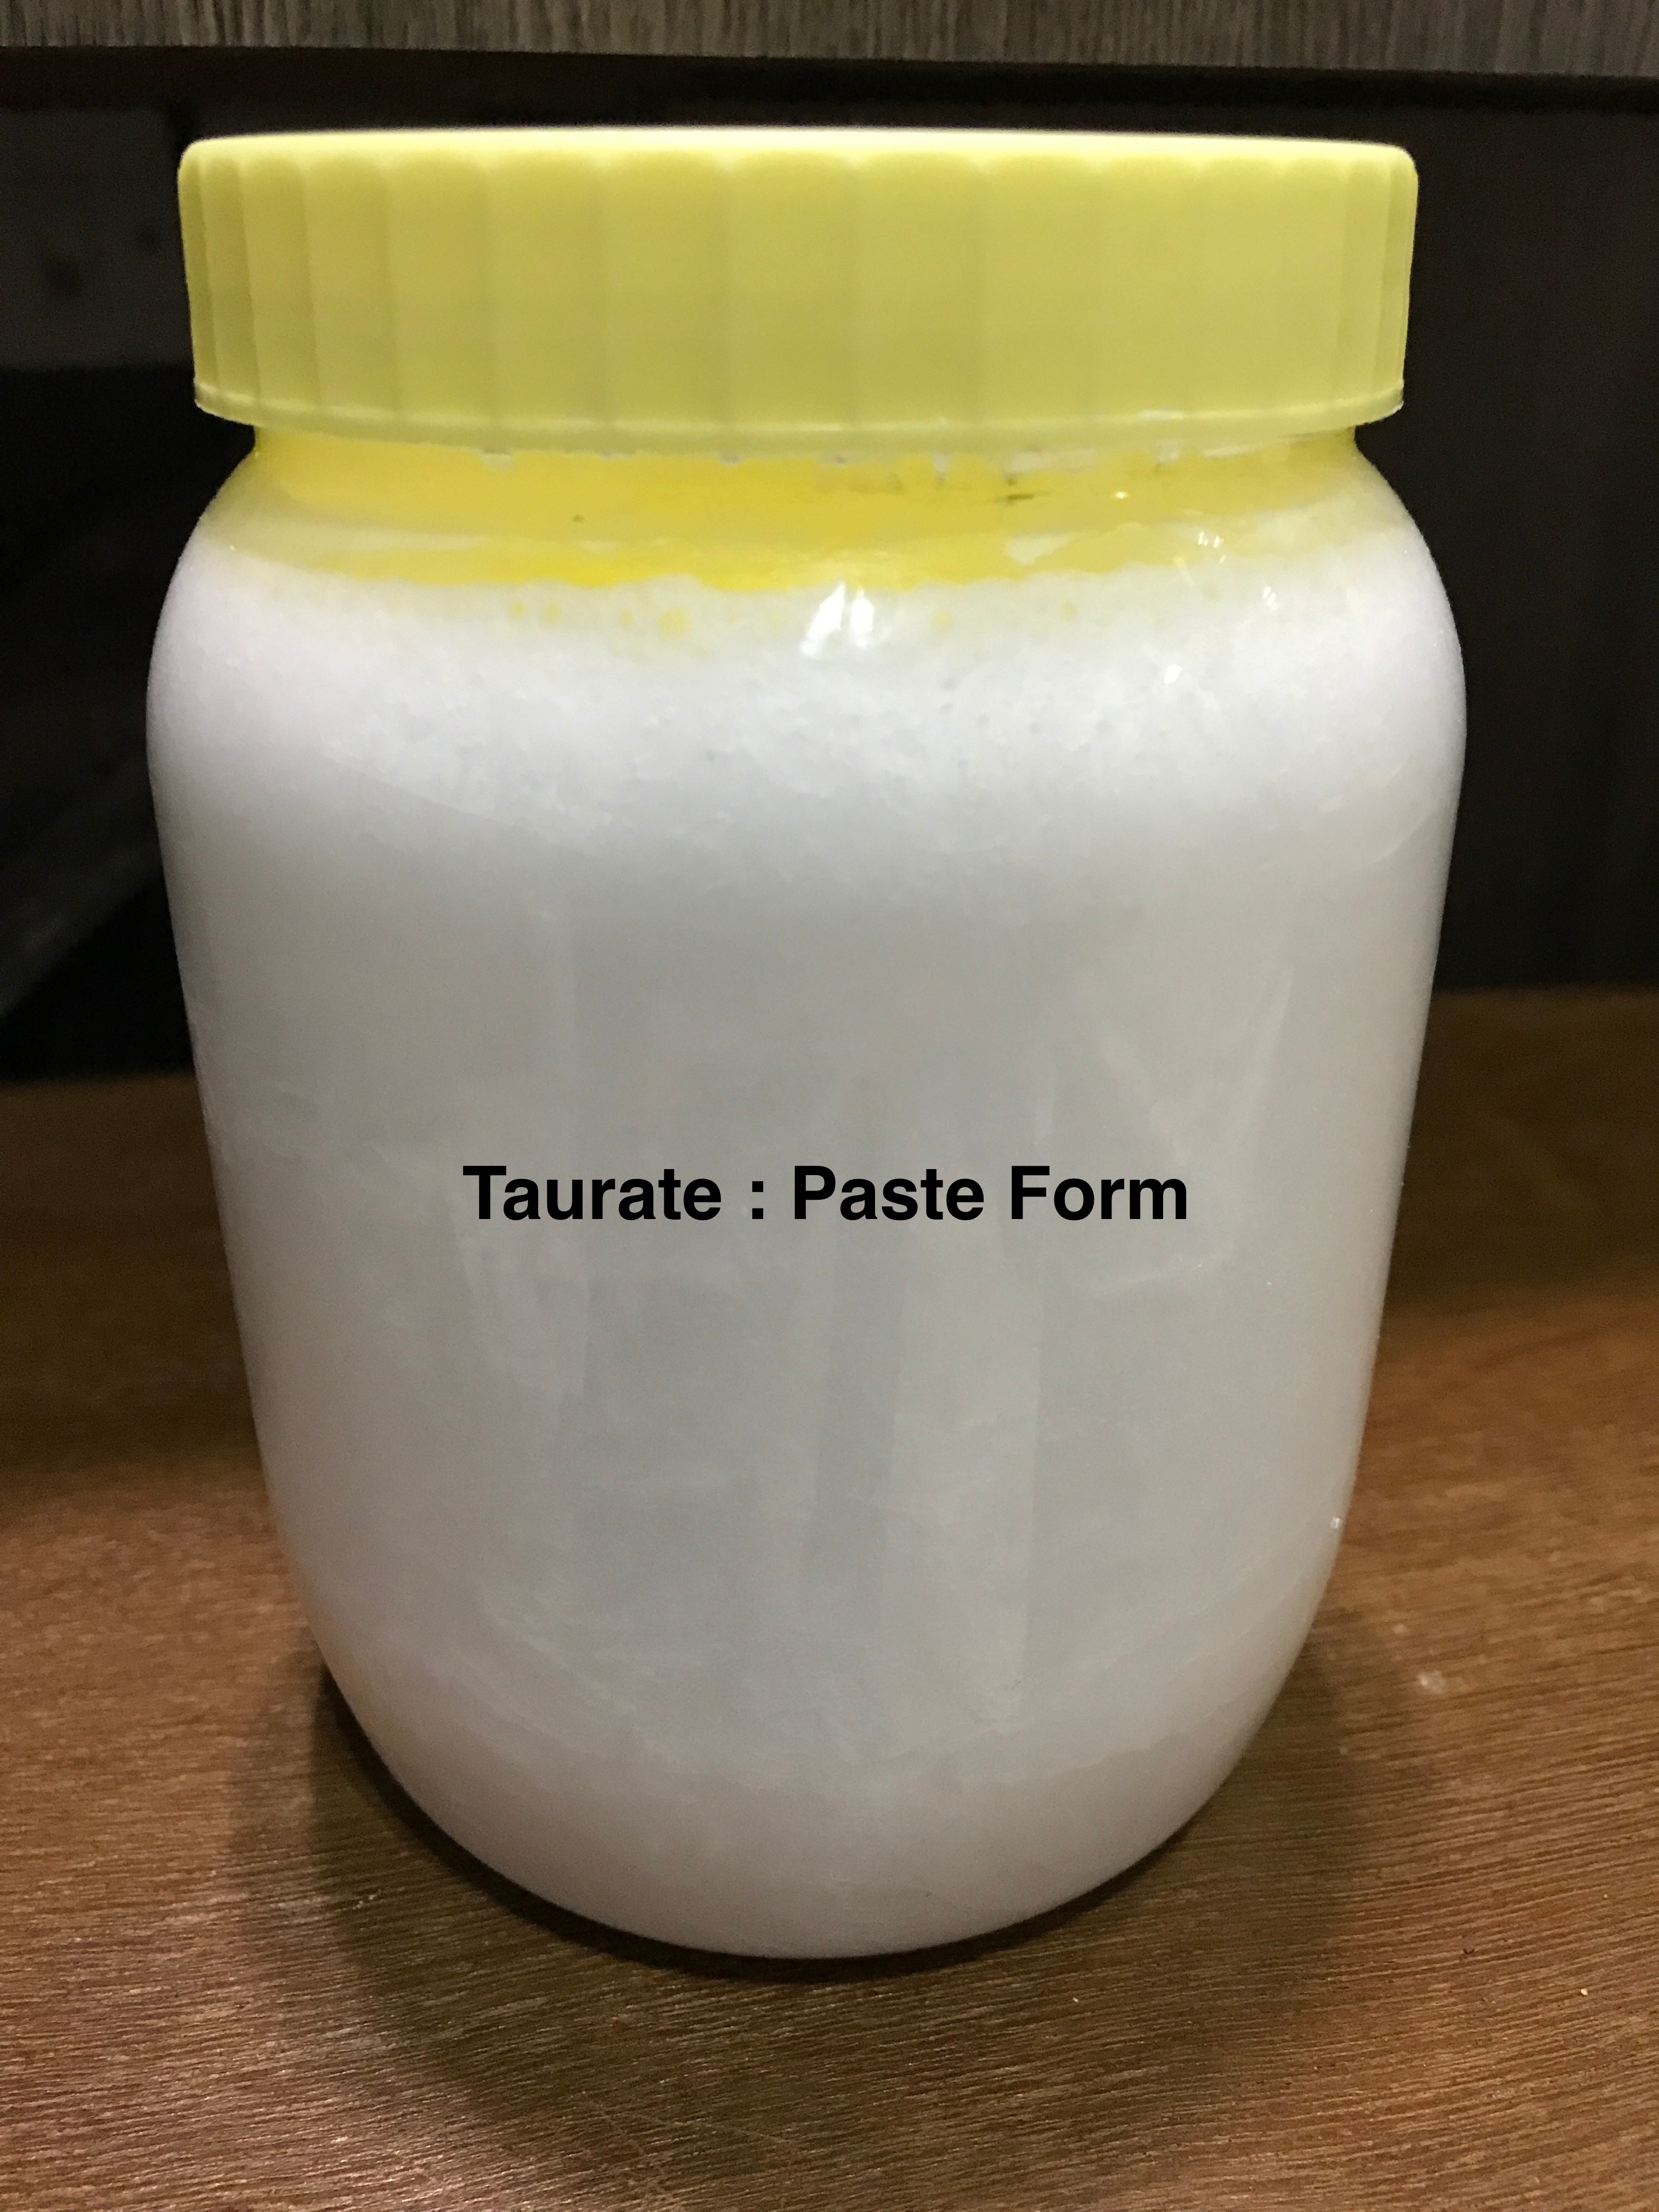 Taurates Surfactants that provide exceptional flash-foam and volume of large lacy bubbles • Sodium Methyl Oleoyl Taurate: Low odour and color Mild, sulfate-free surfactant that is used in shampoos, body washes, etc. Helps build viscosity in surfactant formulations • Sodium Methyl Cocoyl Taurate: 20 – 75% active material ; available in powder form and paste form Provides easy rinseability without leaving behind residue on hair and skin Compatible with all nonionic and anionic surfactants and is stable at extreme pH conditions